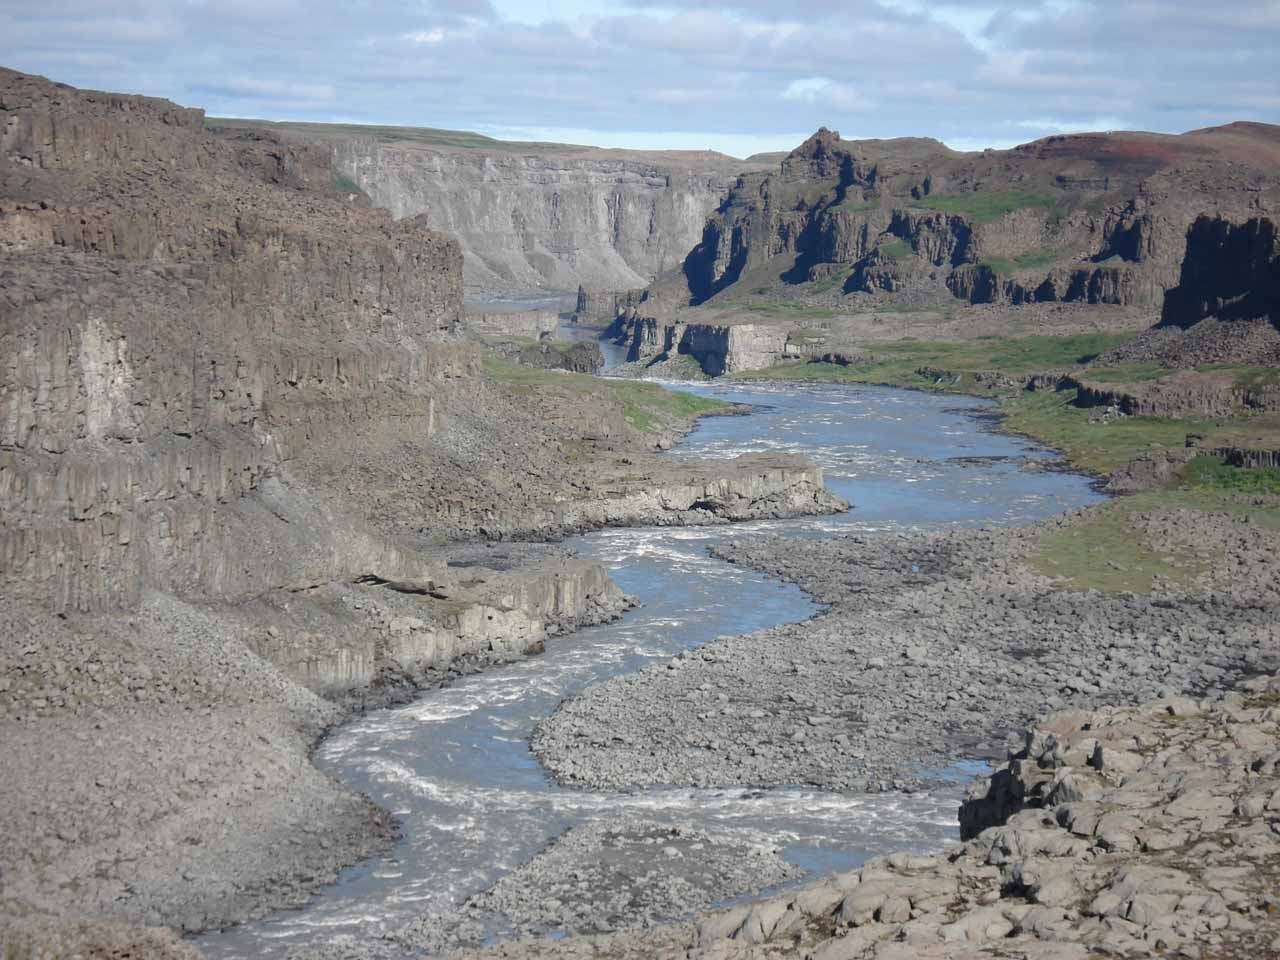 Looking downstream at the Jökulsárgljúfur canyon while hiking the east bank trail